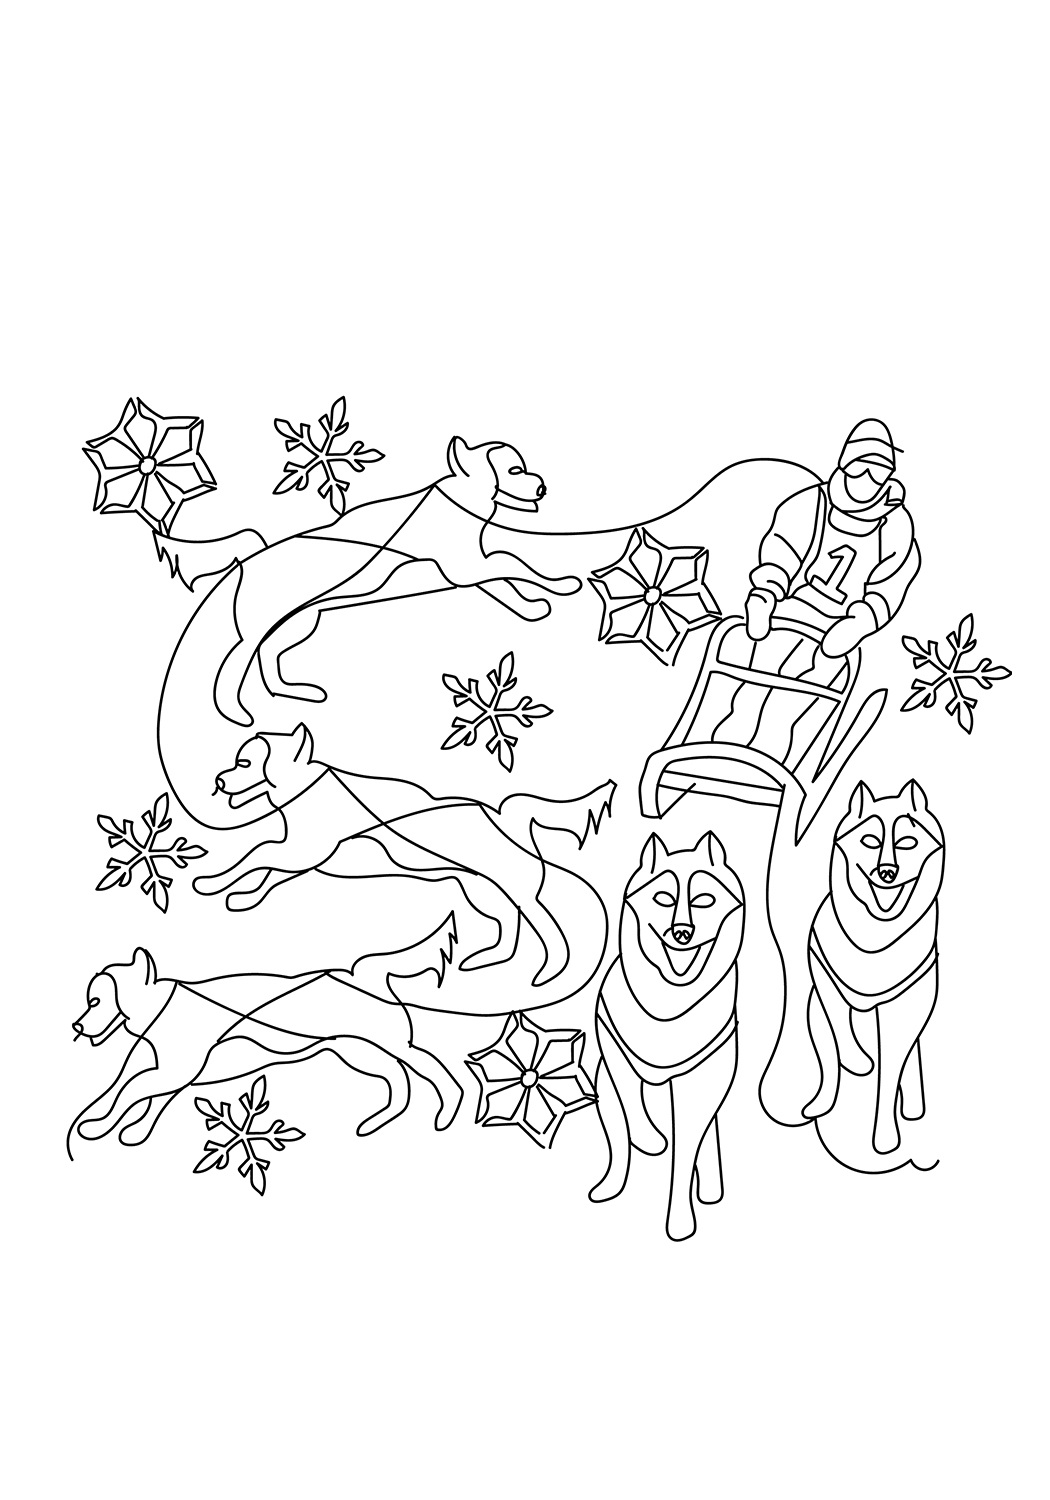 The Dog Sled Coloring Page Free